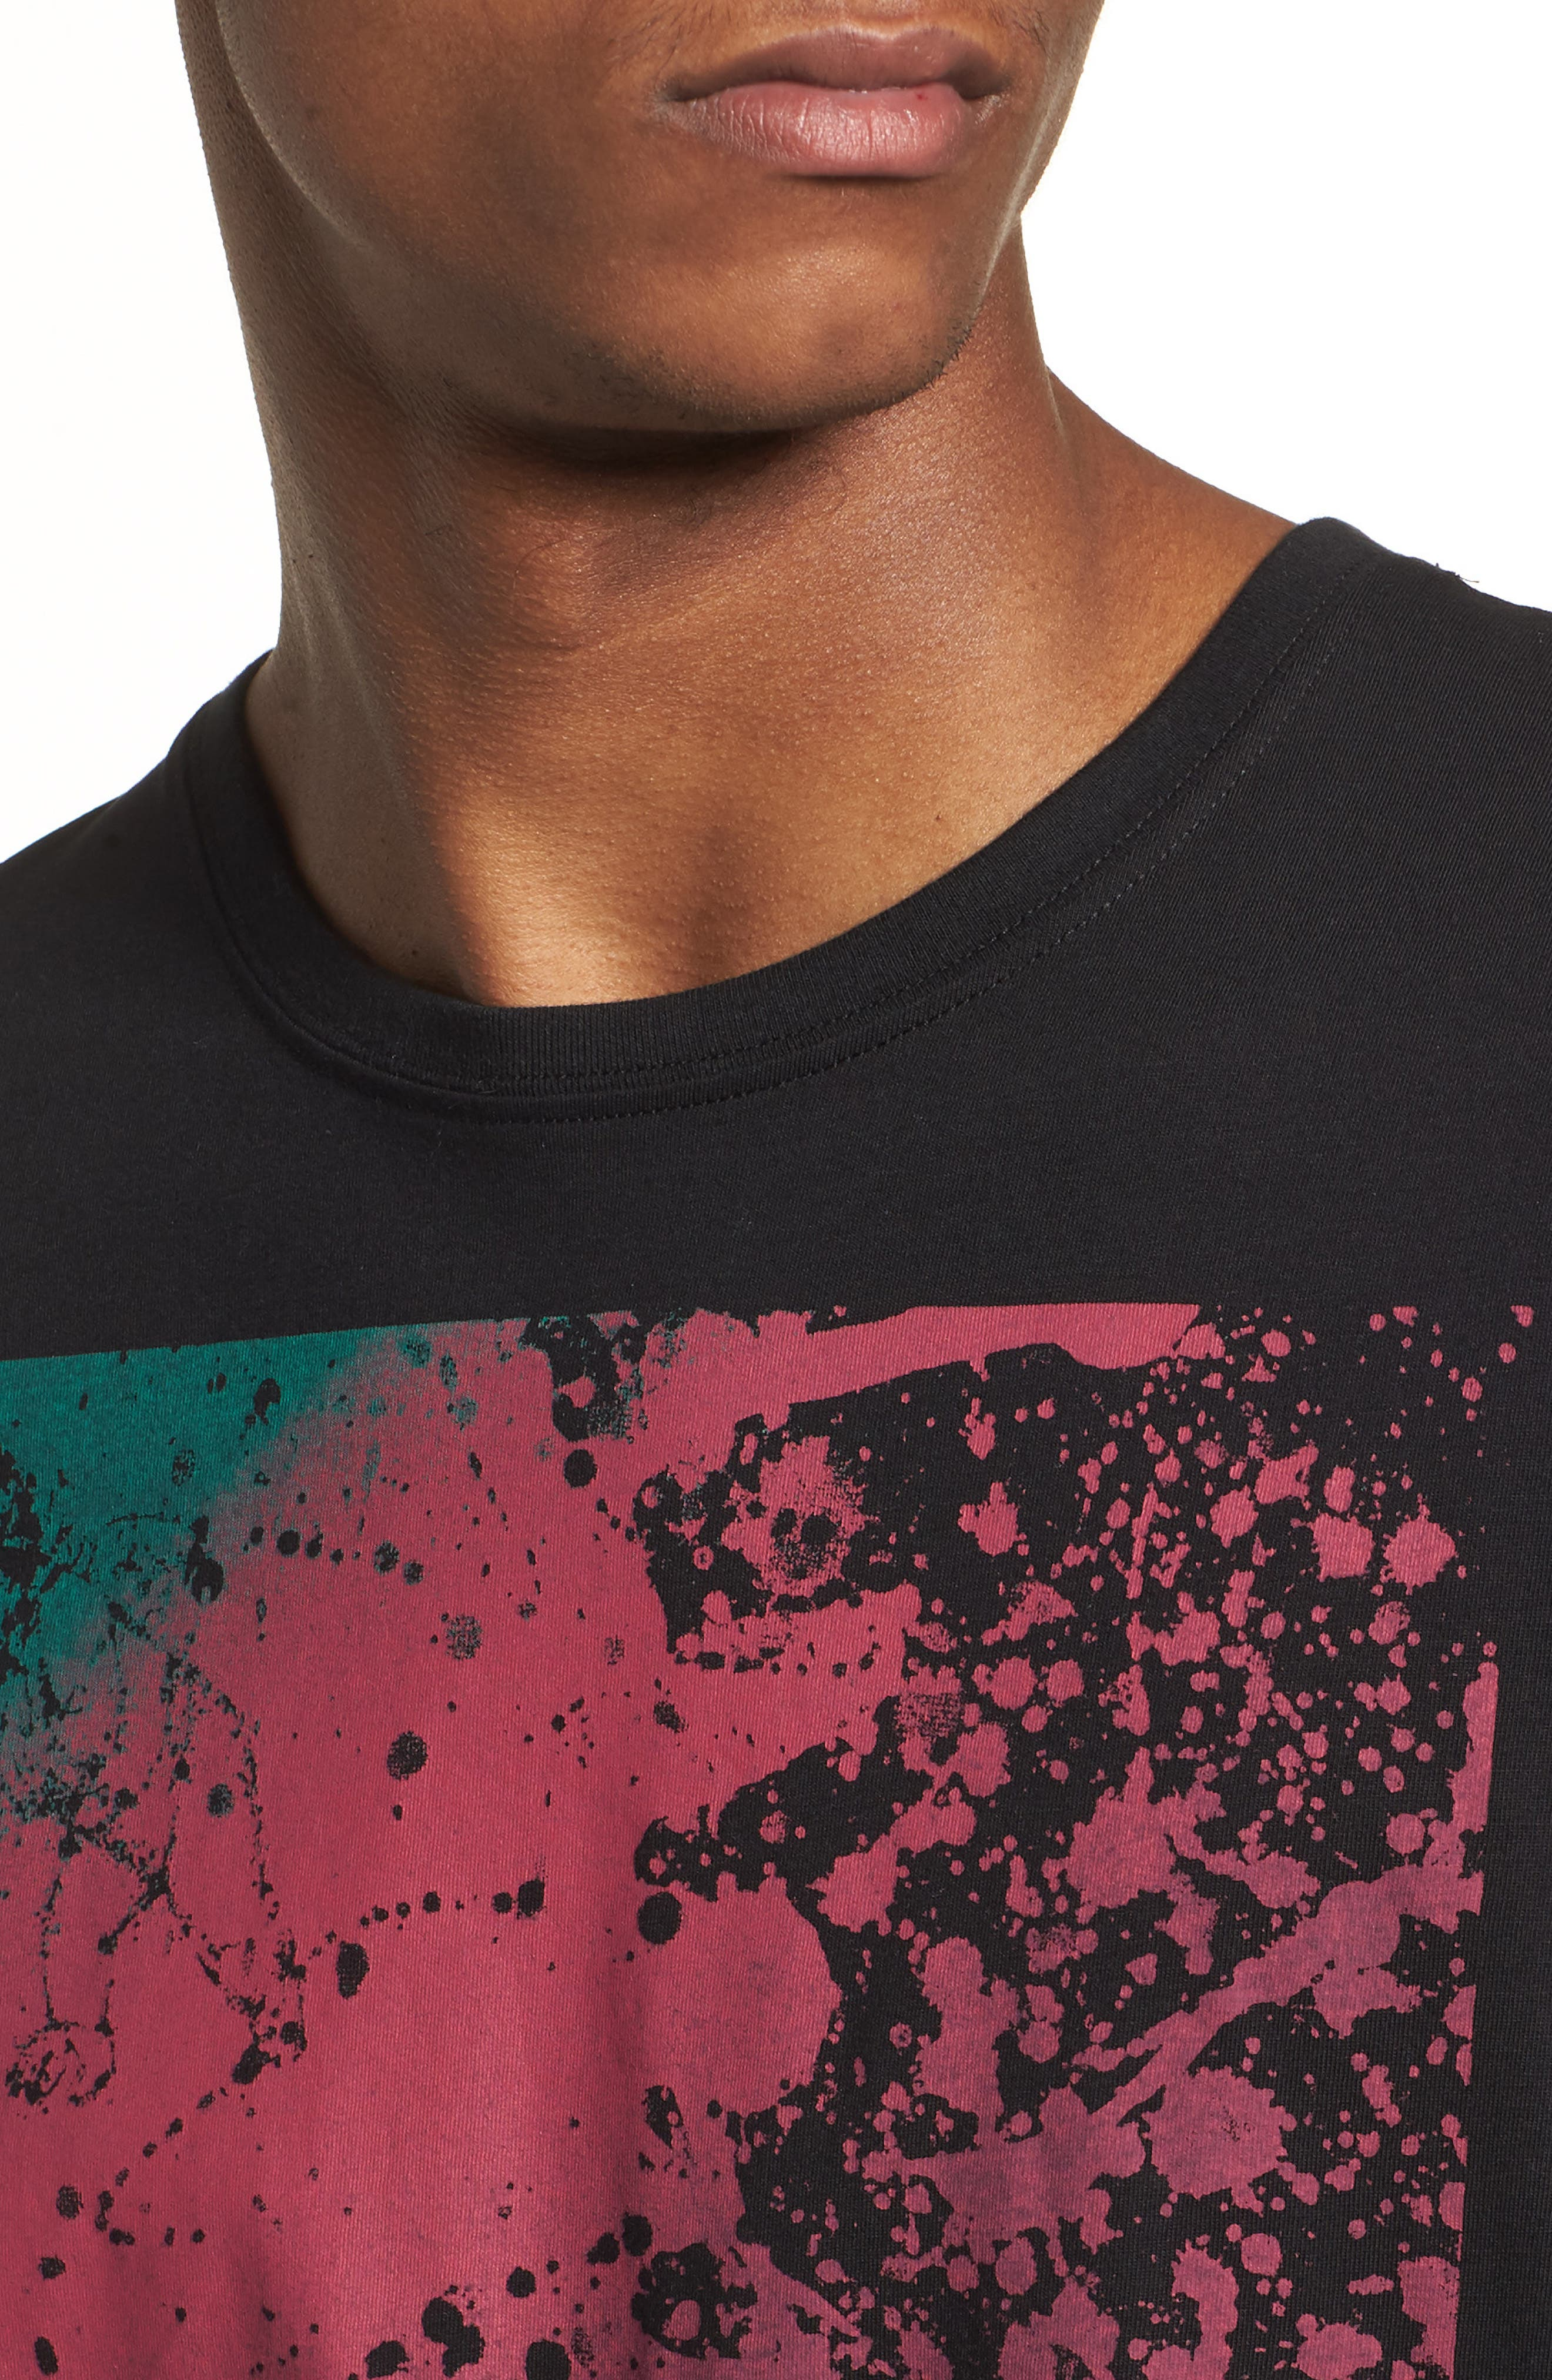 Spattered Graphic T-Shirt,                             Alternate thumbnail 4, color,